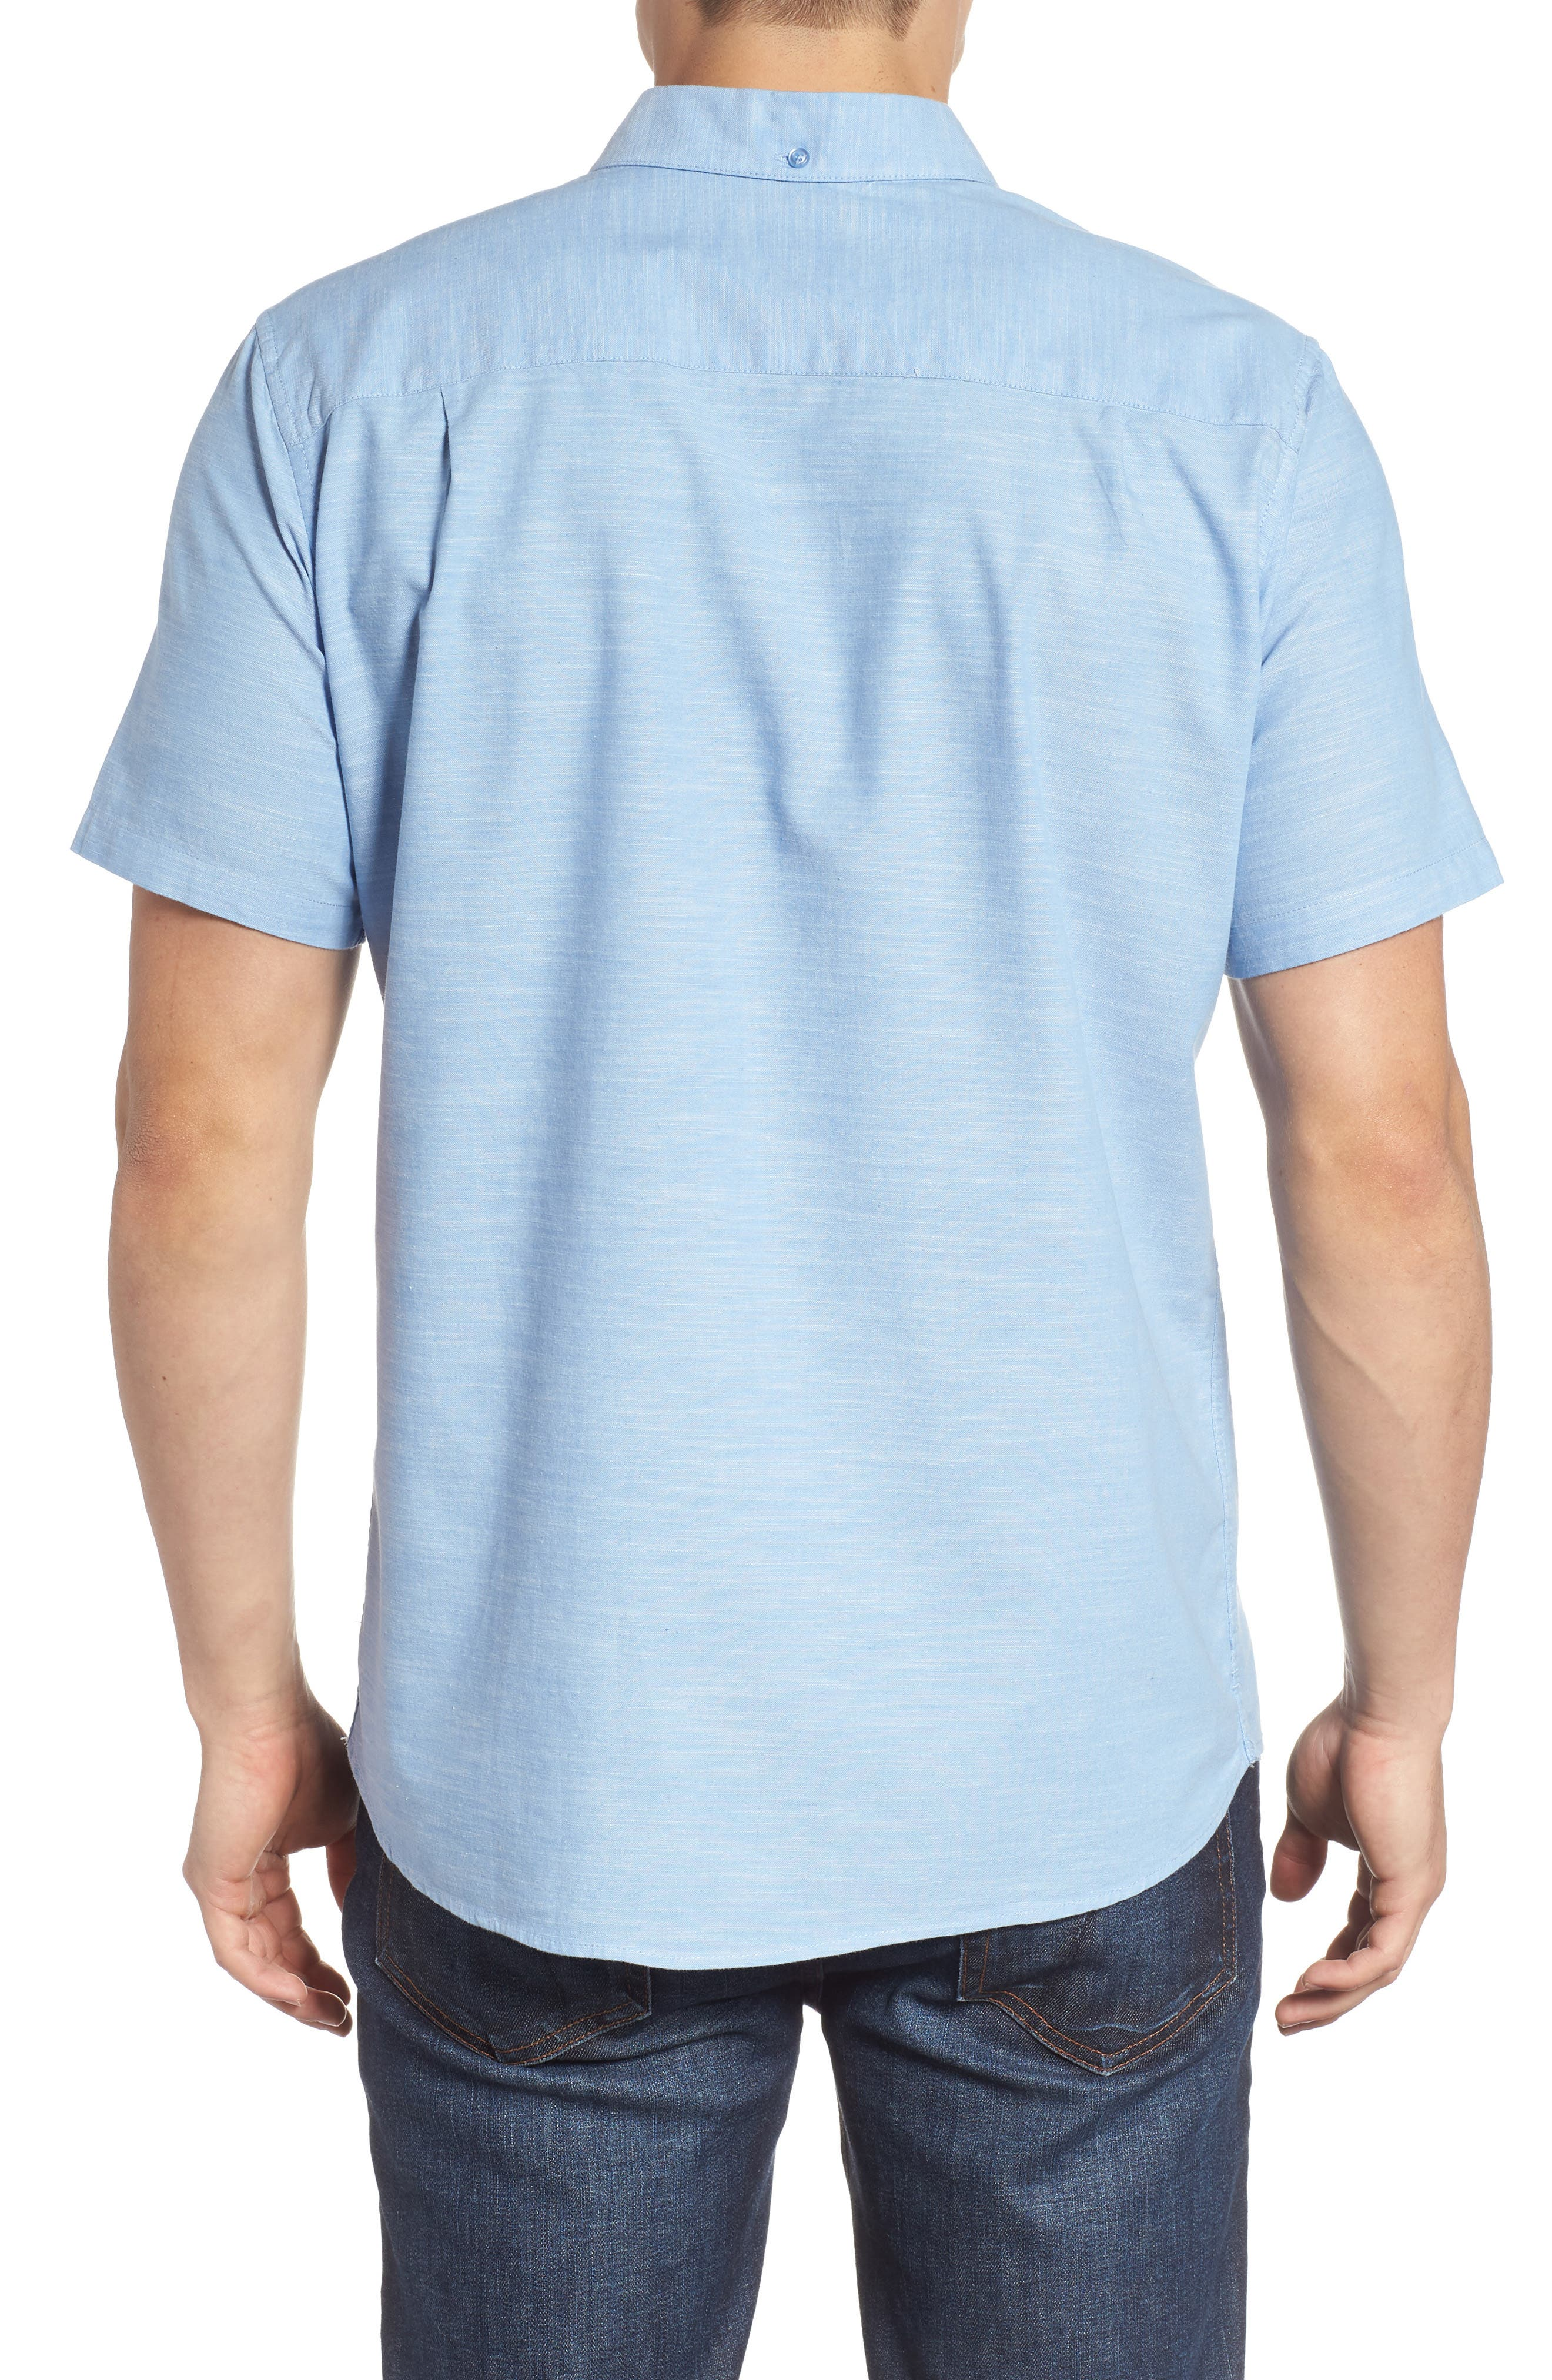 One & Only 2.0 Woven Shirt,                             Alternate thumbnail 2, color,                             BLUE OX